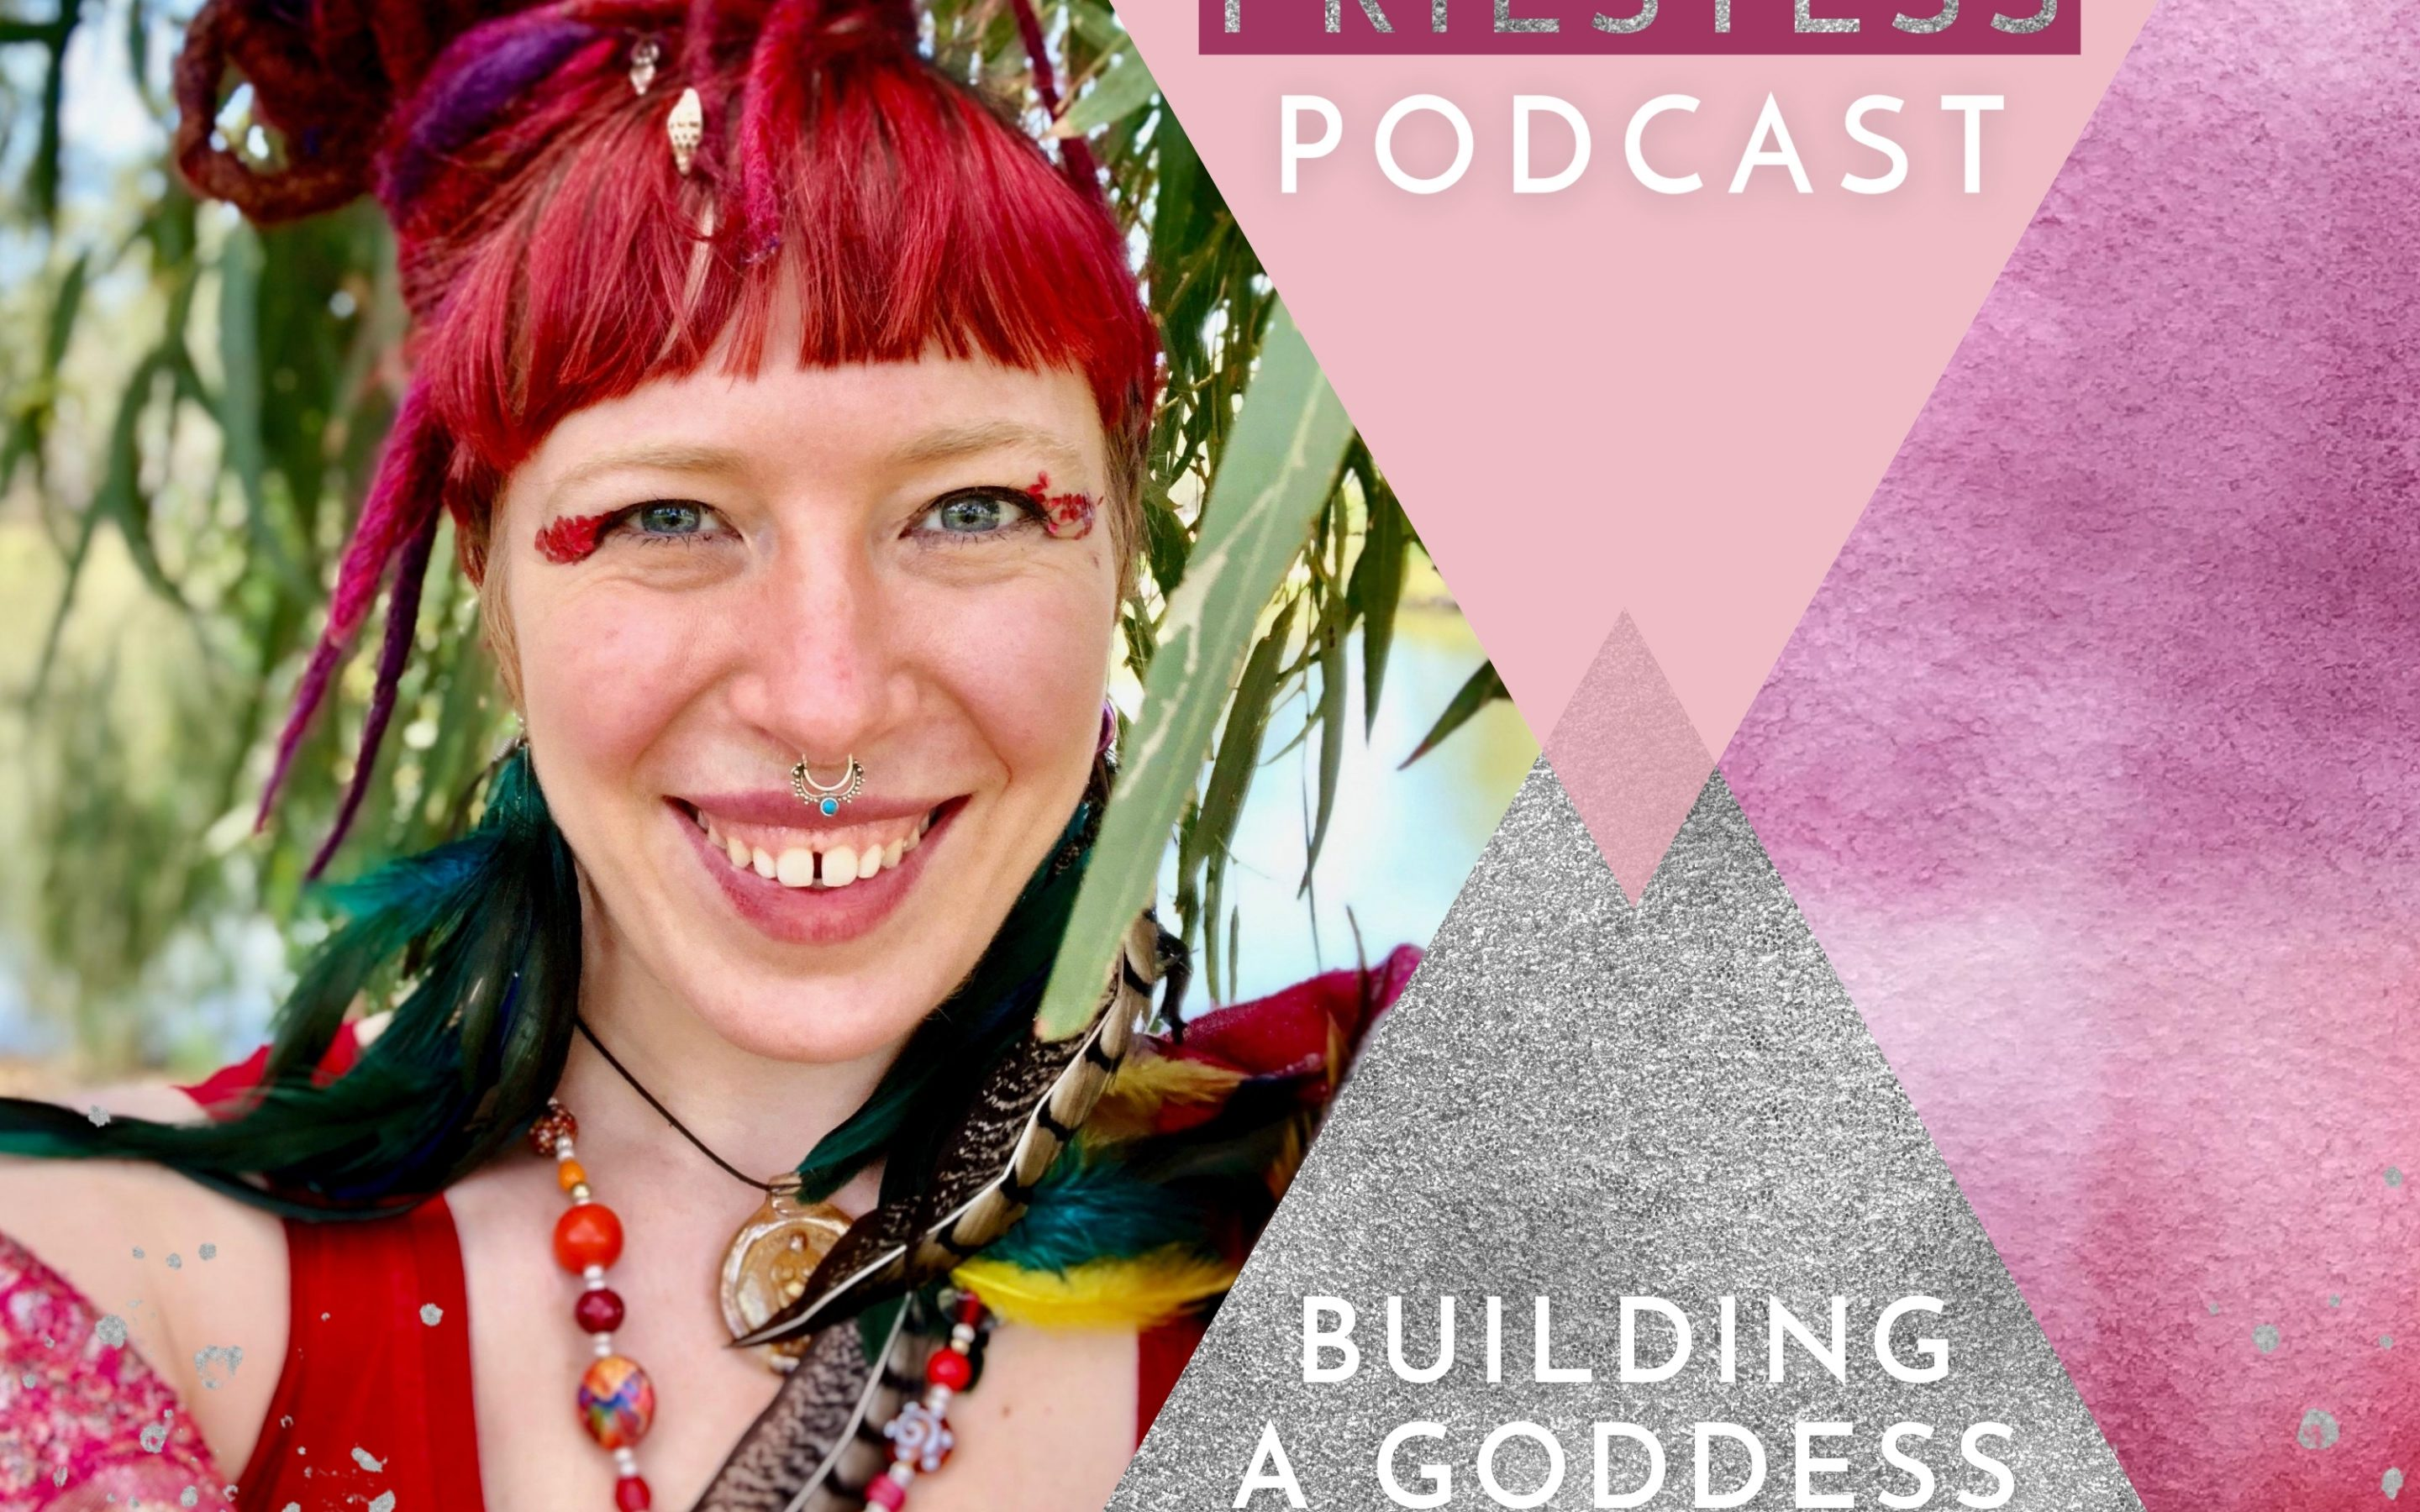 Pia Gaia on Building a Goddess